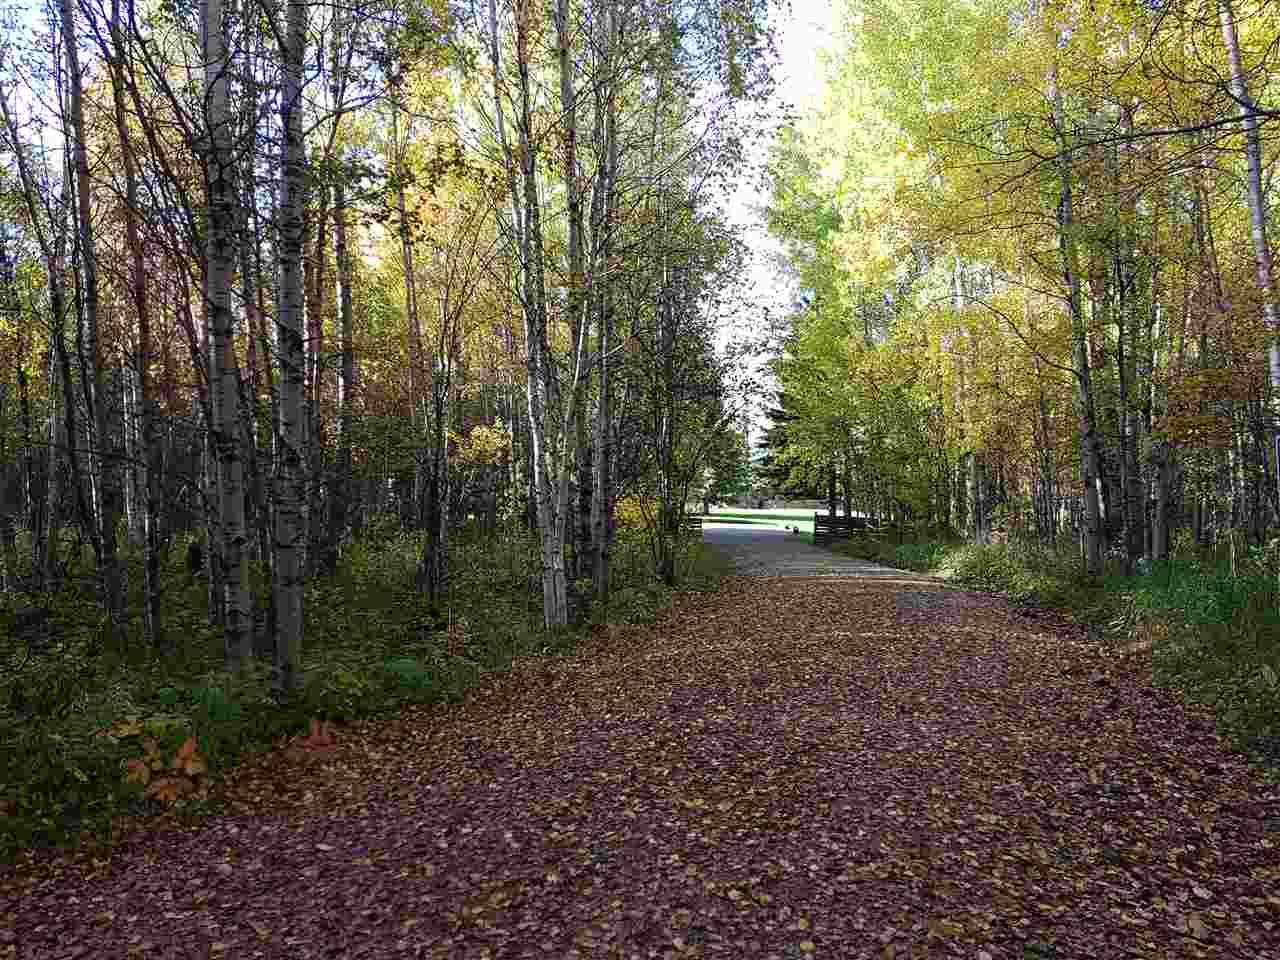 """Turn Key Opportunity awaits you at the end of the Winding Driveway leading to this Scenic 39.75 acres where you will """"UNwind""""! Serviced with Power, Well, Phone, Septic Holding tank. Main Cottage is 14'X31.5' with power, plumbing and is heated and insulated, 2 outbuildings 1@ 12x12, 1 @ 12X18. Main Cottage has a very open concept with Kitchen cabinetry at one end, dining/living in center, sleeping quarters at the opposite end. Along with new 3 pce bath. Buildings shingled in 2014. Trails to the large pond and through out the Mixed mature trees: aspen, birch, poplar and evergreens cover approximately 80 - 85% of the property with a creek running through. Wildlife galore and song birds are everywhere! Picturesque and serene and oozing with potential for your permanent home or a getaway retreat! Ideally located to Pigeon, Battle and Twin Lakes!! De-Stress here in solitude and tranquility! Yard is perimeter fenced and gated. Pavement to your gate!!! This is the parcel you have been waiting for!!!"""